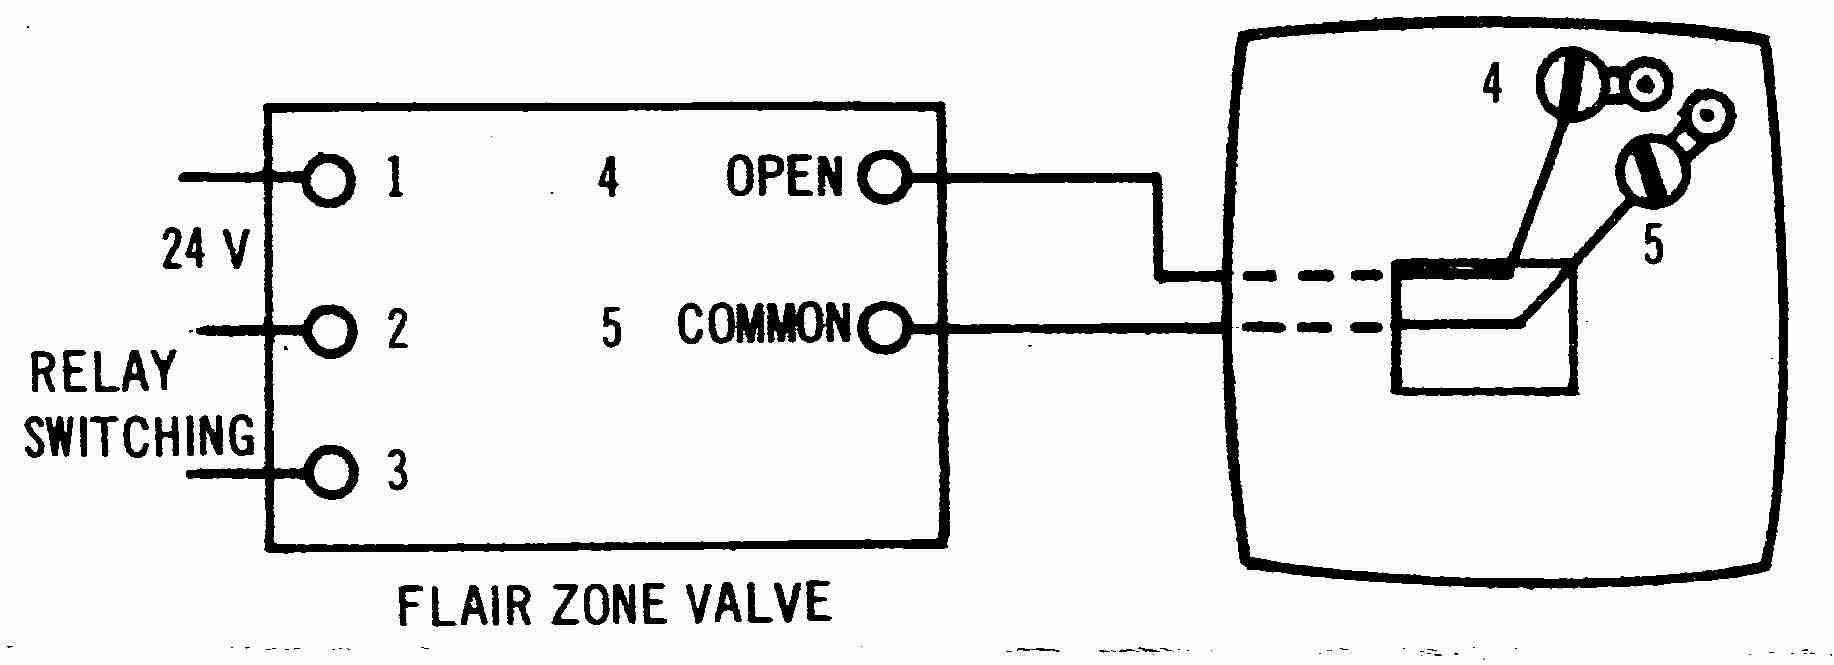 Flair2w_001_DJFc1?resize=665%2C241&ssl=1 white rodgers zone valve wiring diagram wiring diagram White Rodgers Relay Wiring at bayanpartner.co